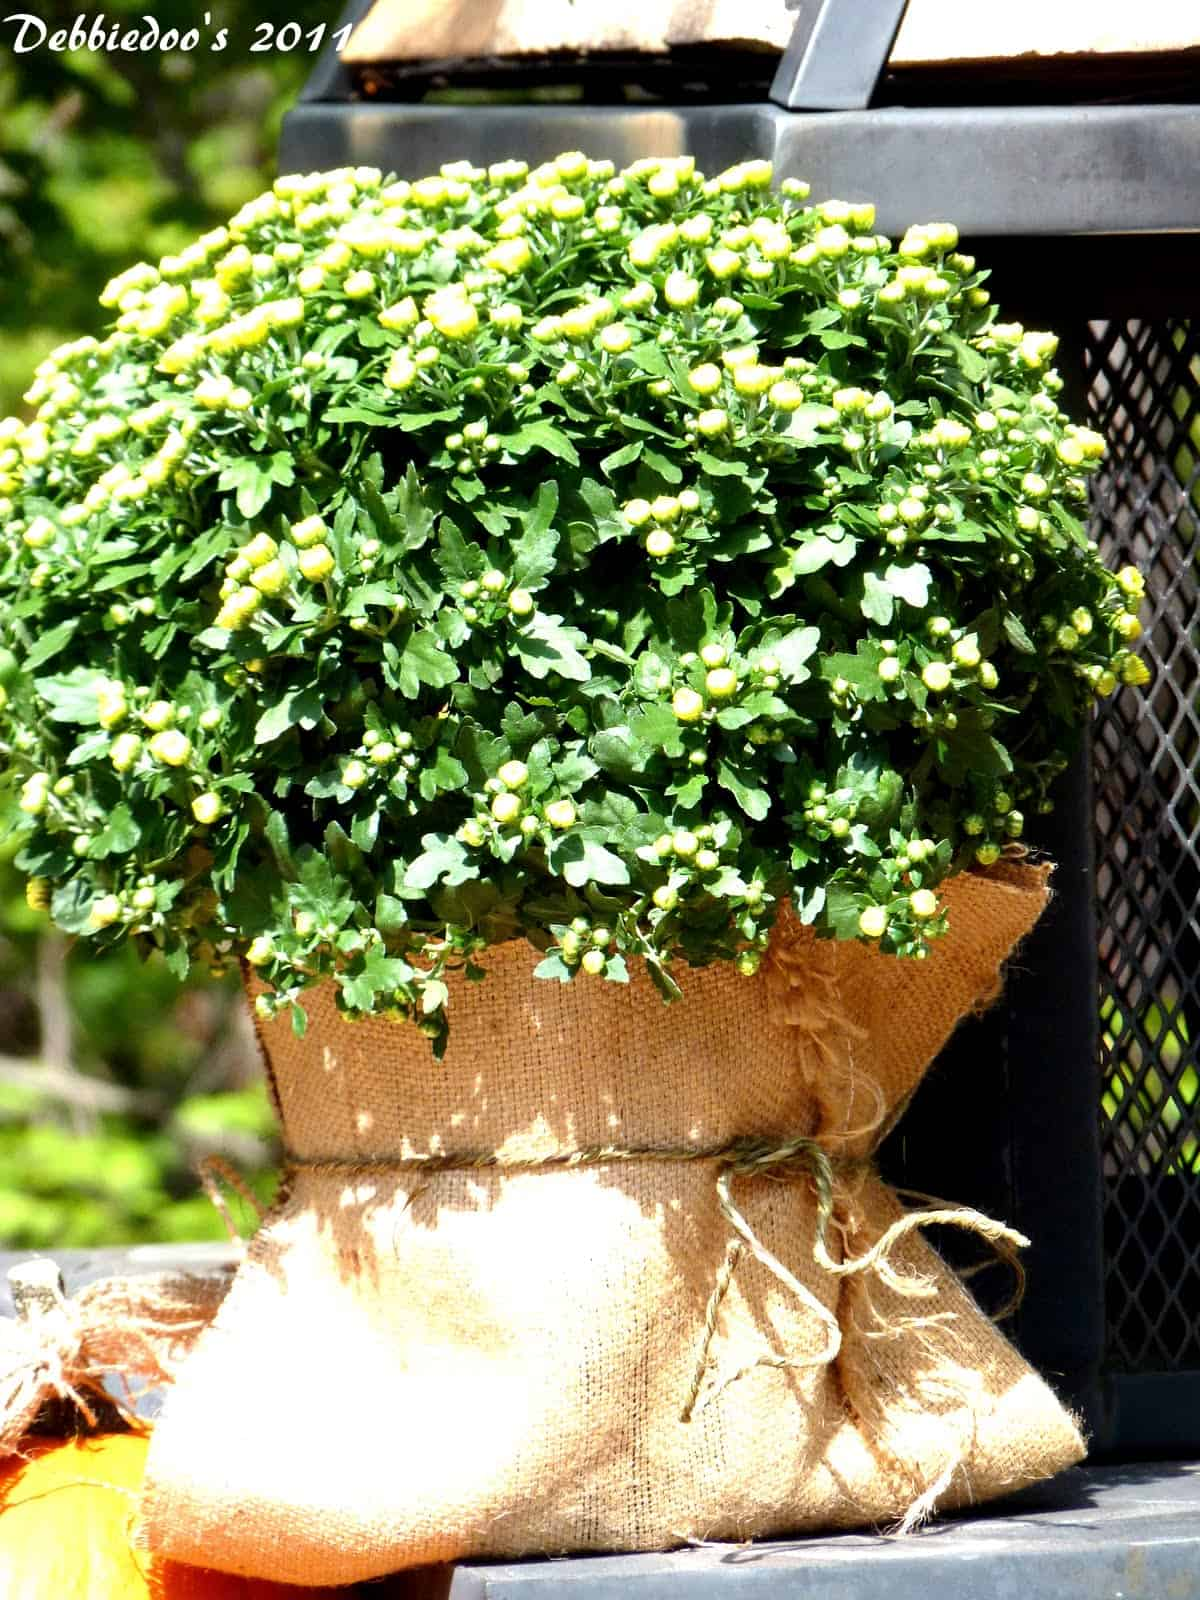 Burlap wrapped and tied shrubberies